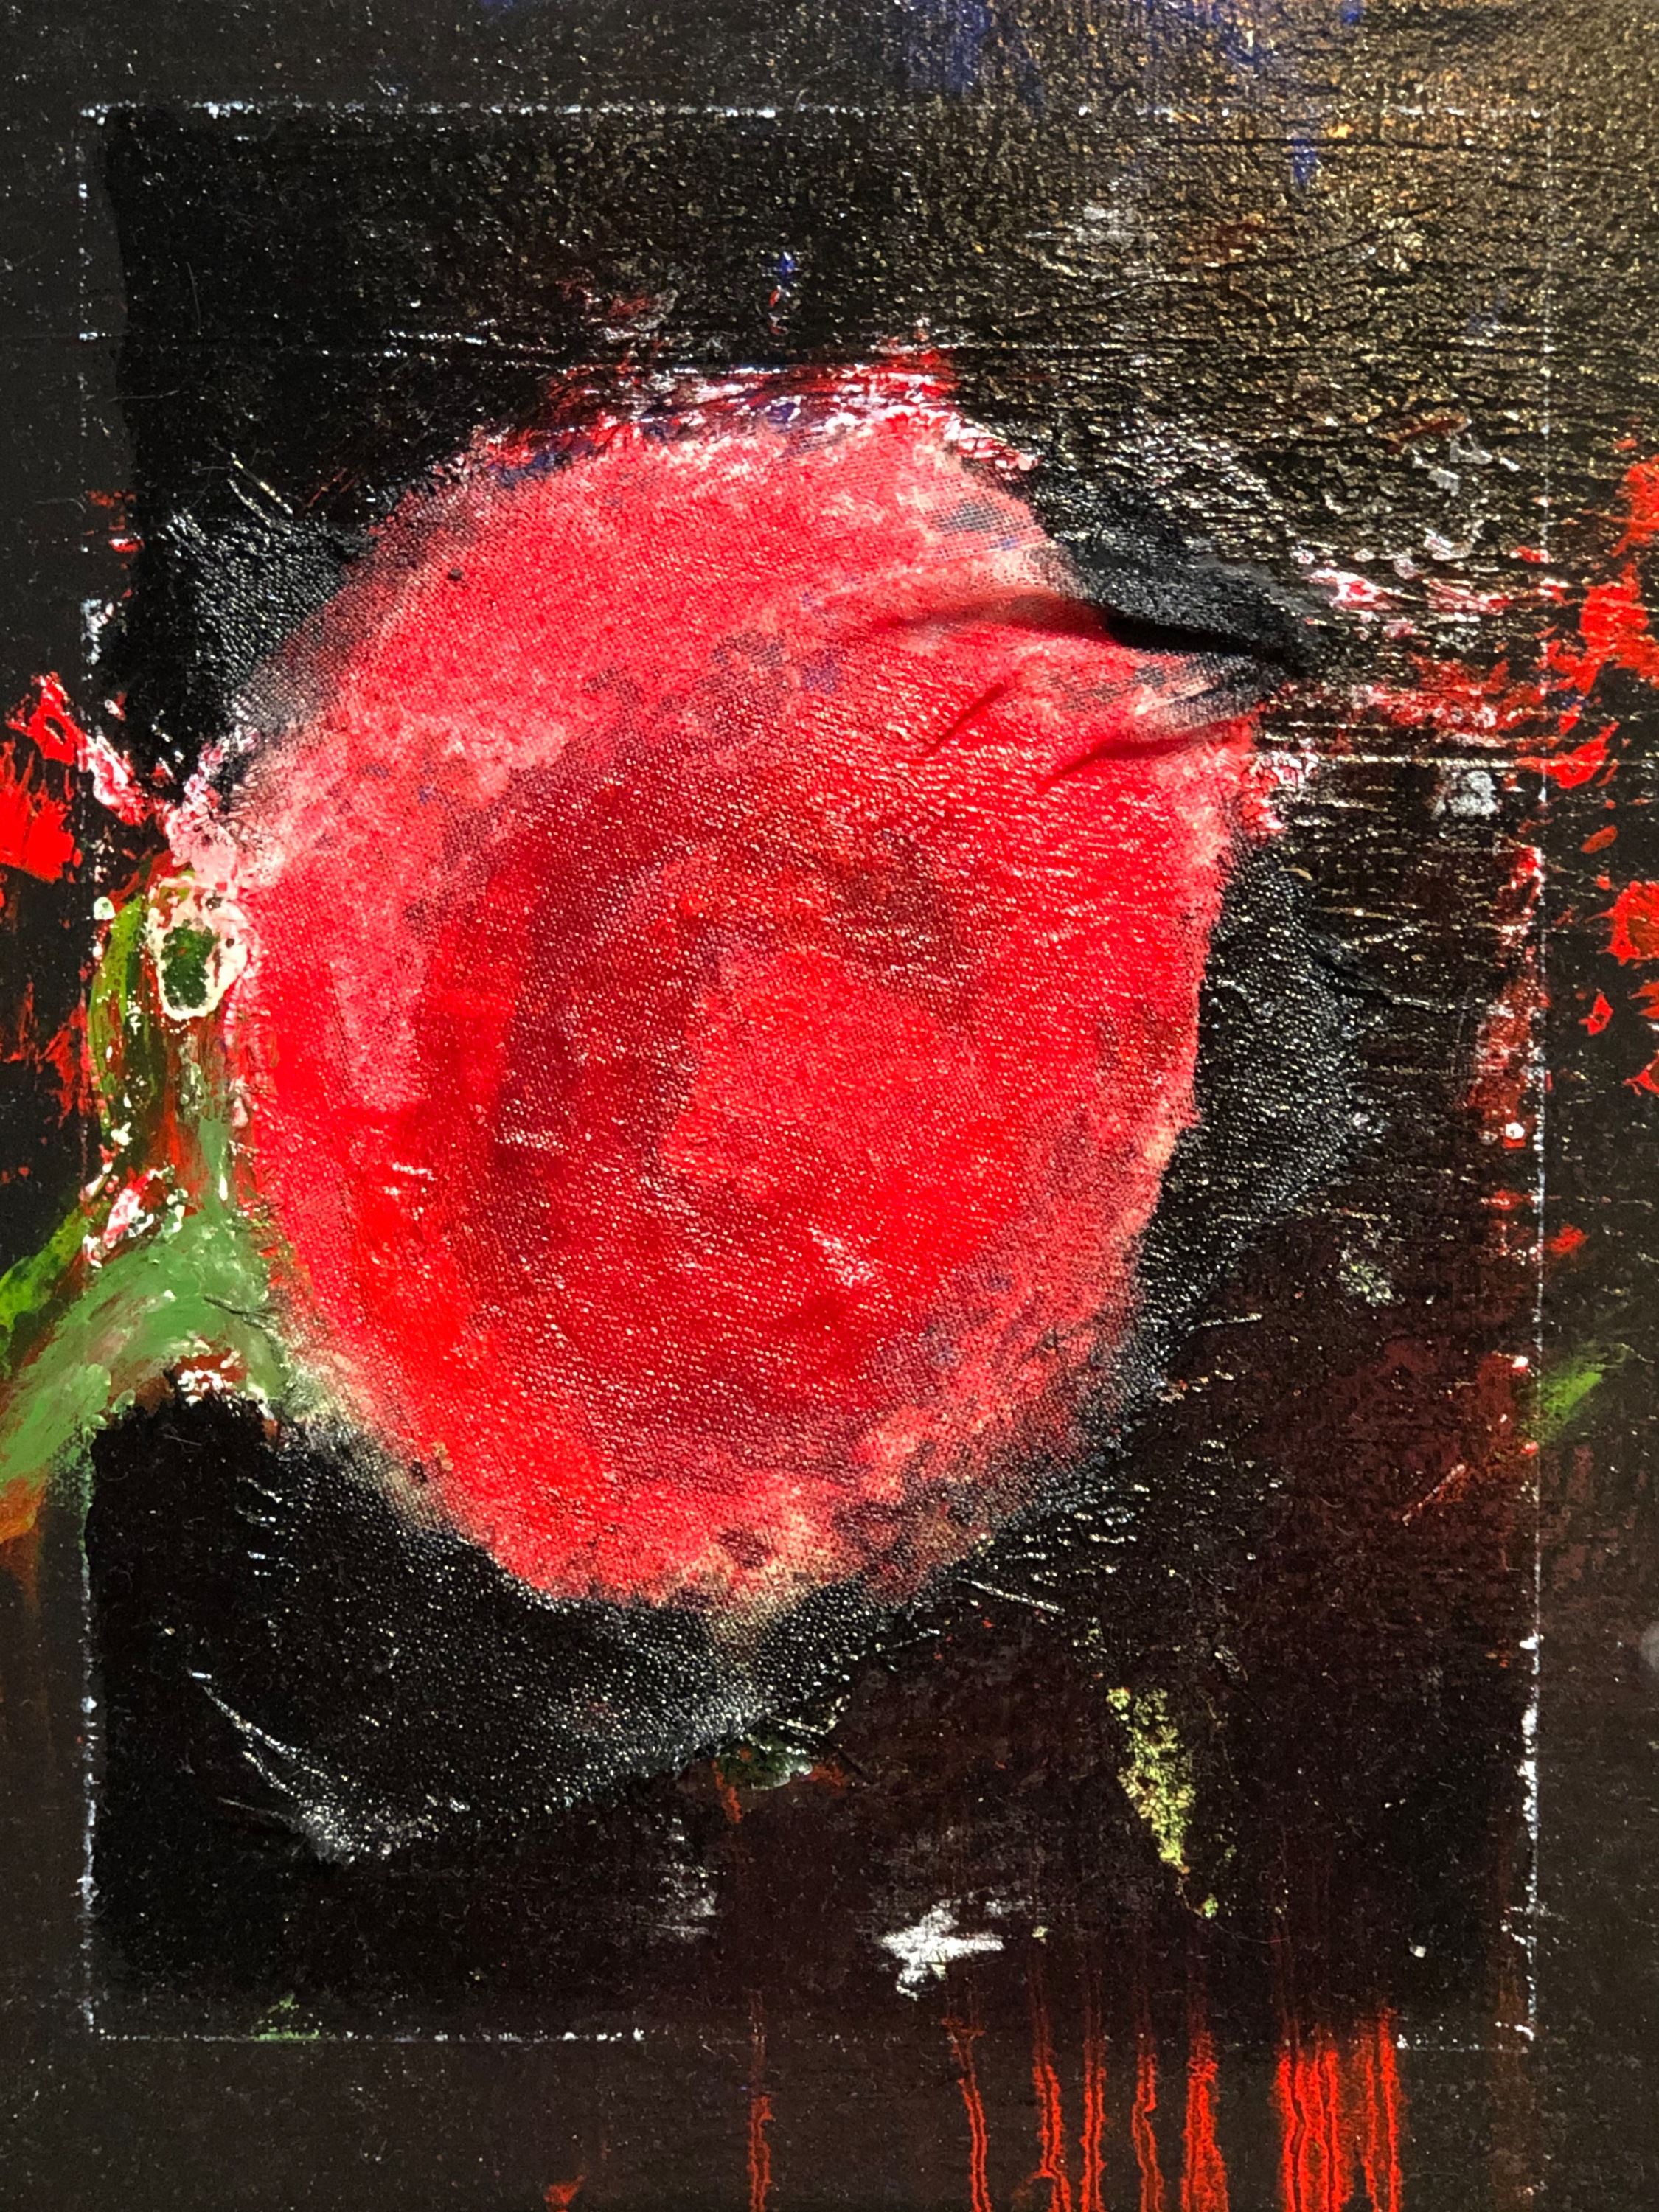 Dripping red rose 14x11 ebwrid